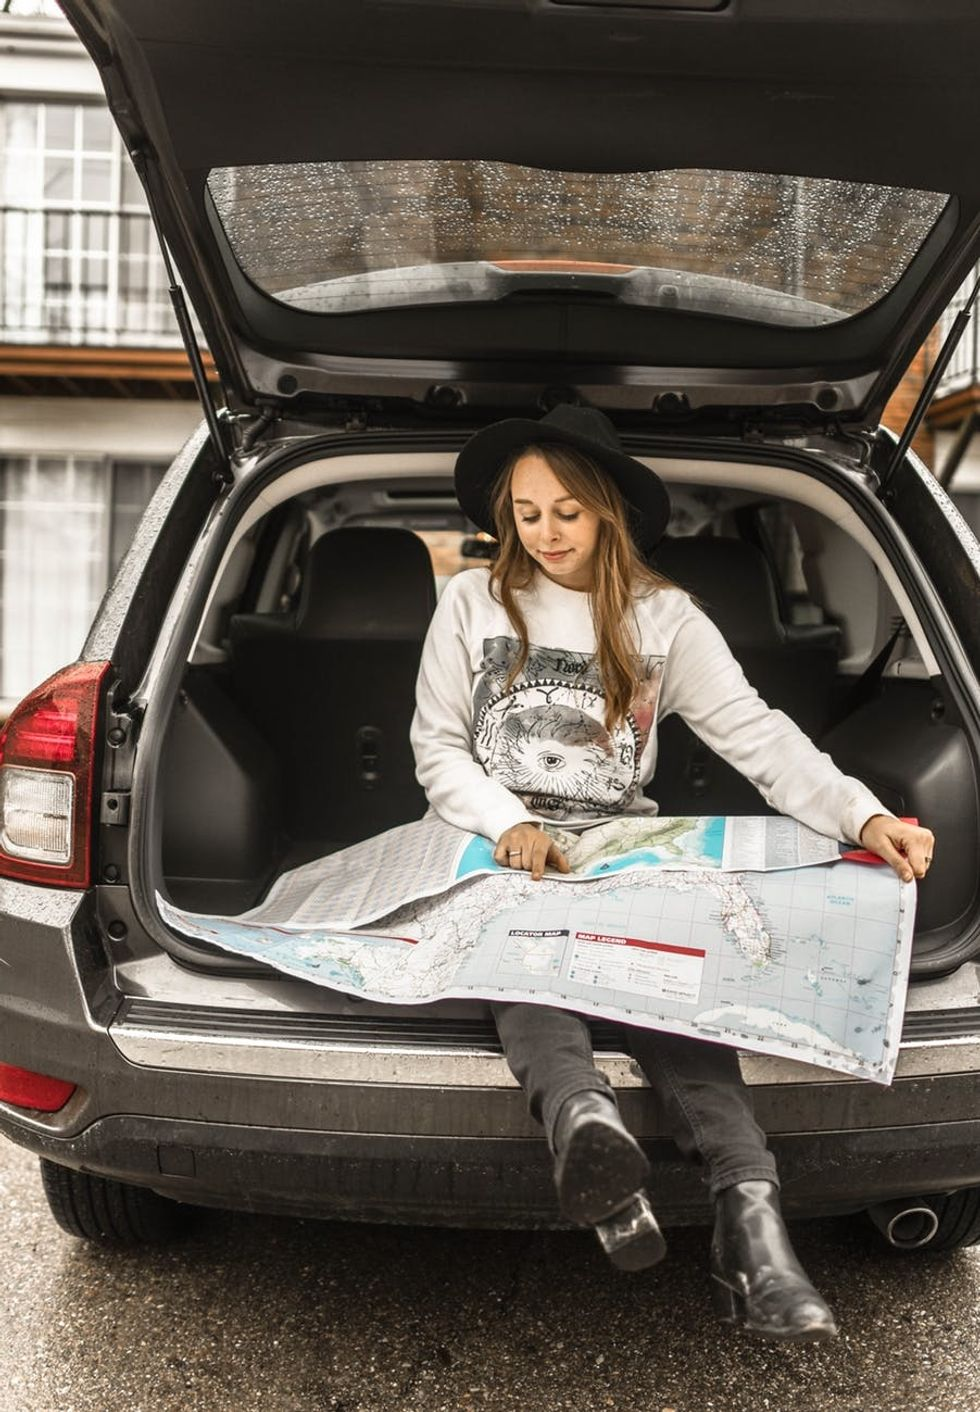 13 Road Trip Hacks For Safe And Enjoyable Travel